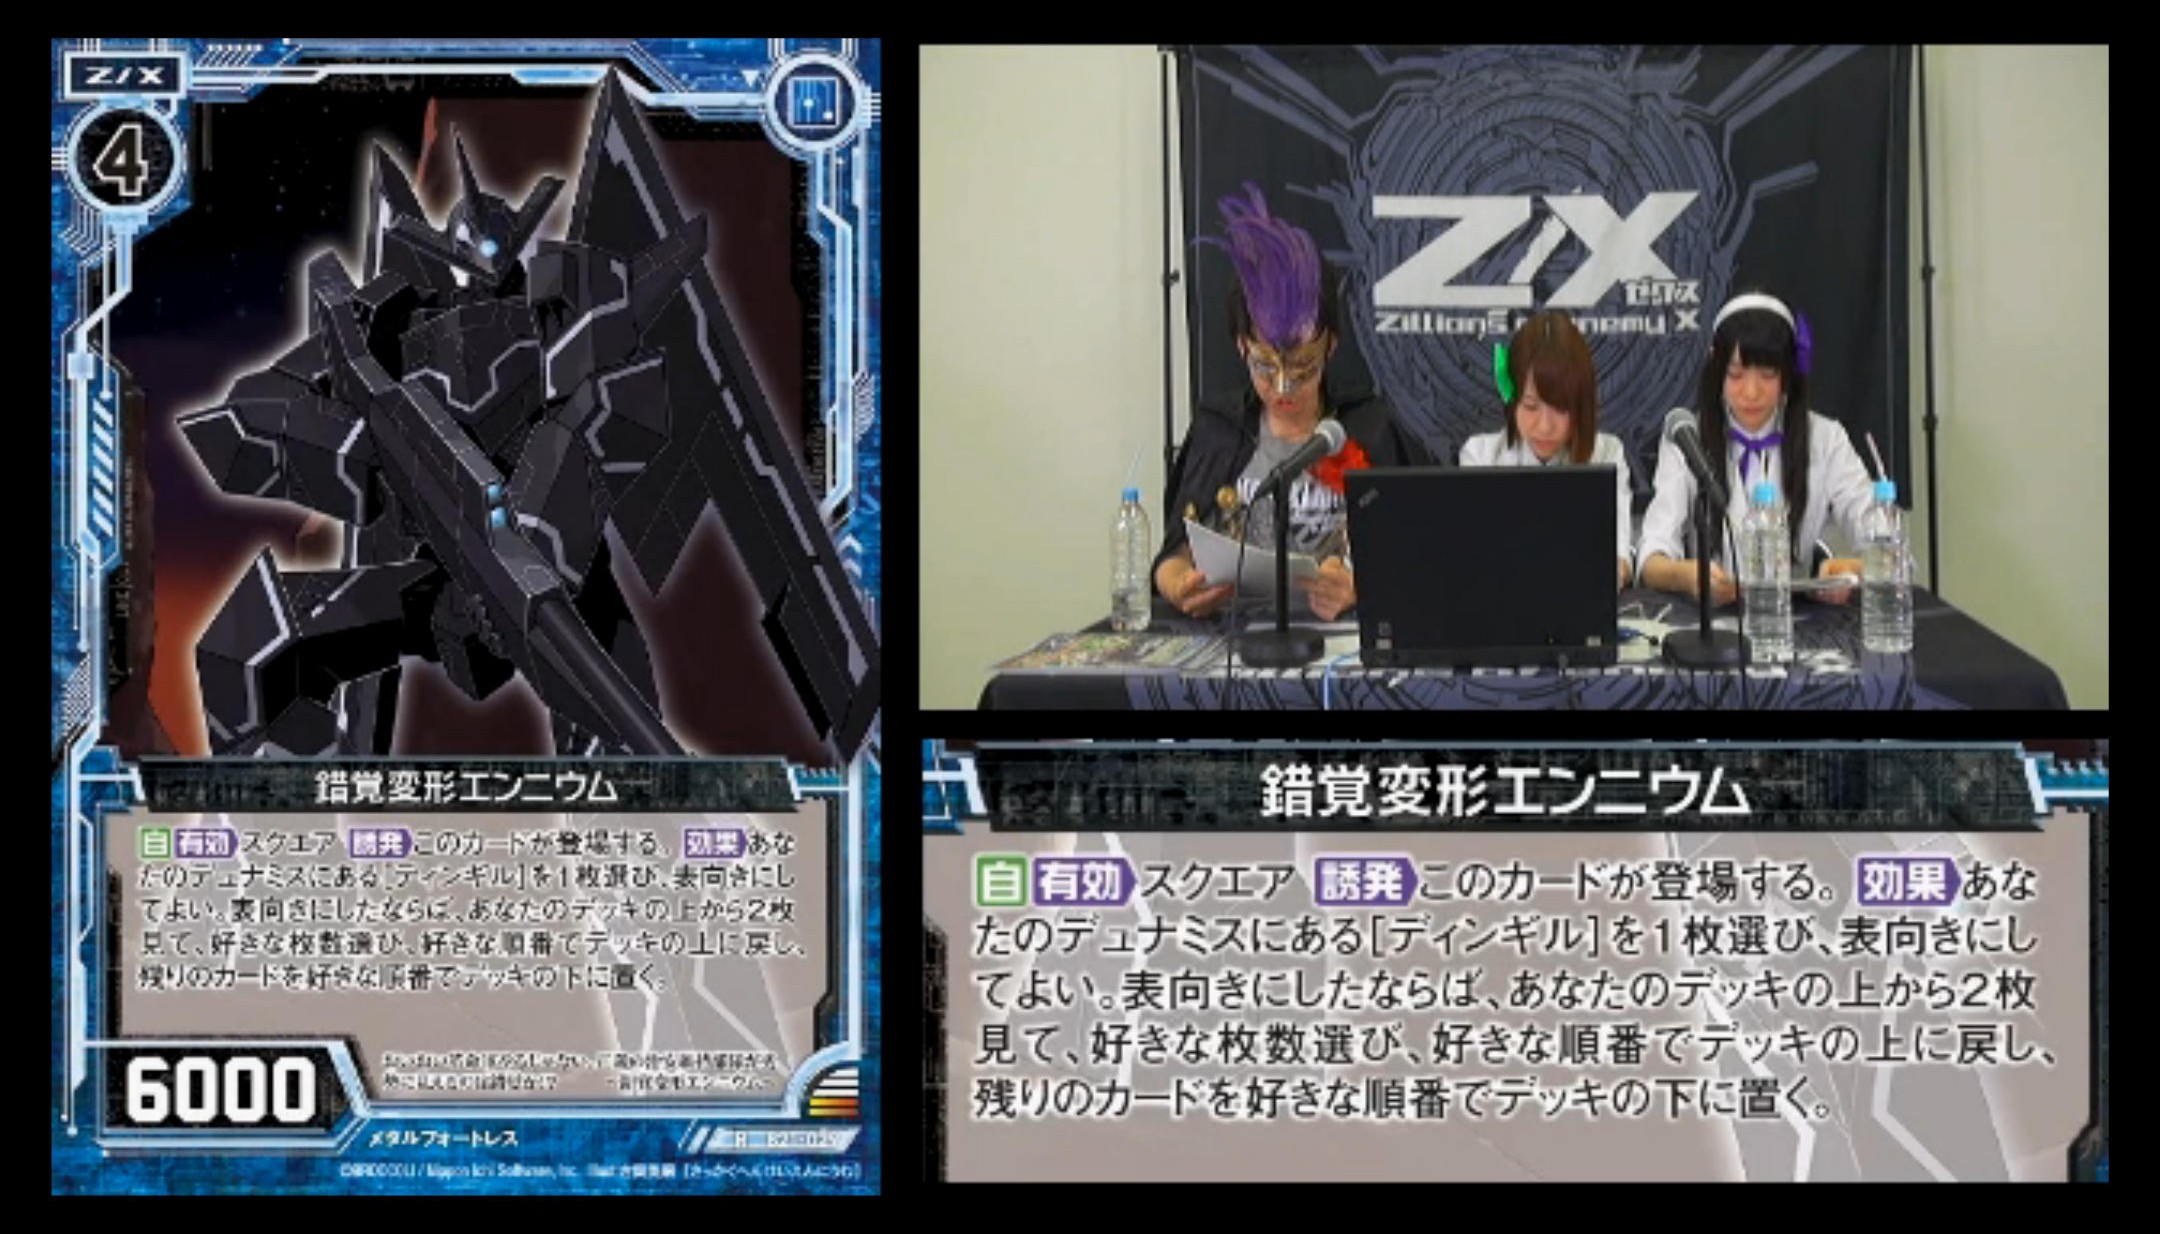 zx-ignition-broadcast-170531-019.jpg